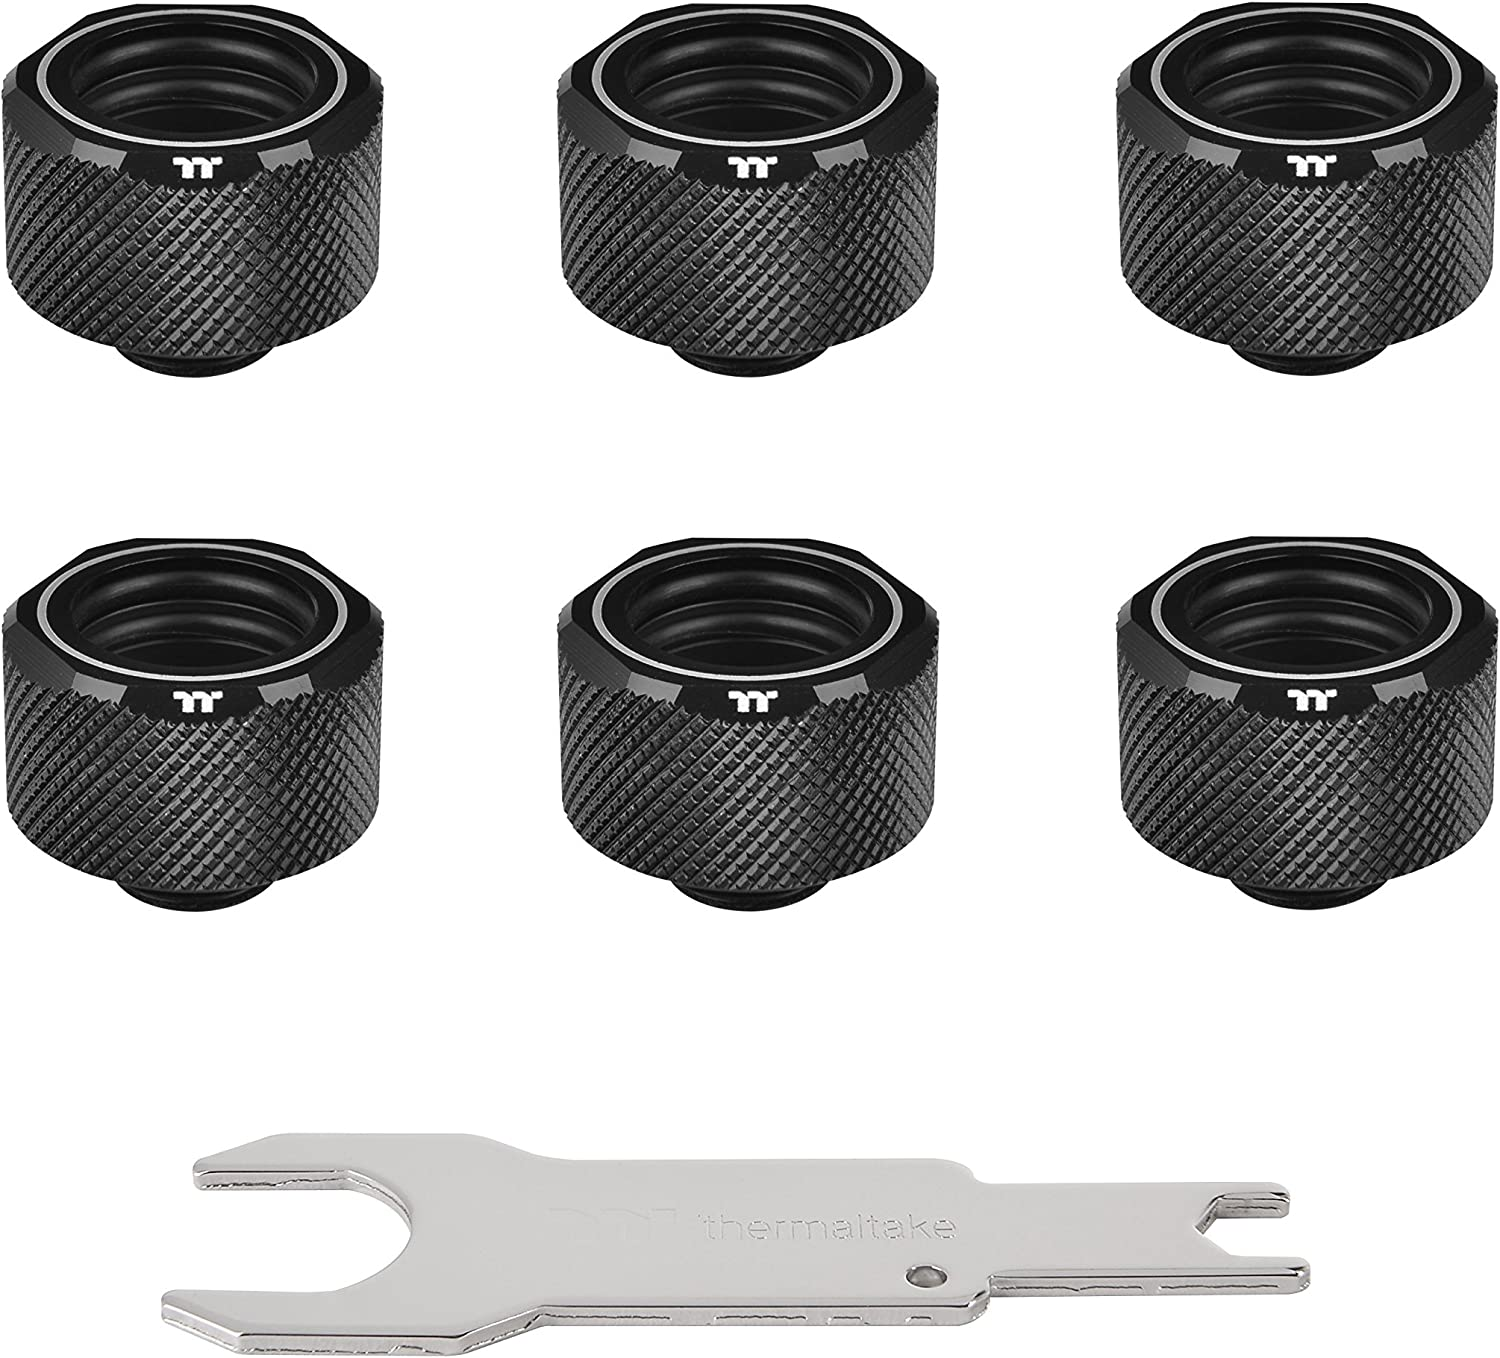 Thermaltake Pacific Black 4 Build-in O-Rings C-Pro G1/4 PETG 16mm OD Compression Fitting 6 Pack CL-W214-CU00BL-B